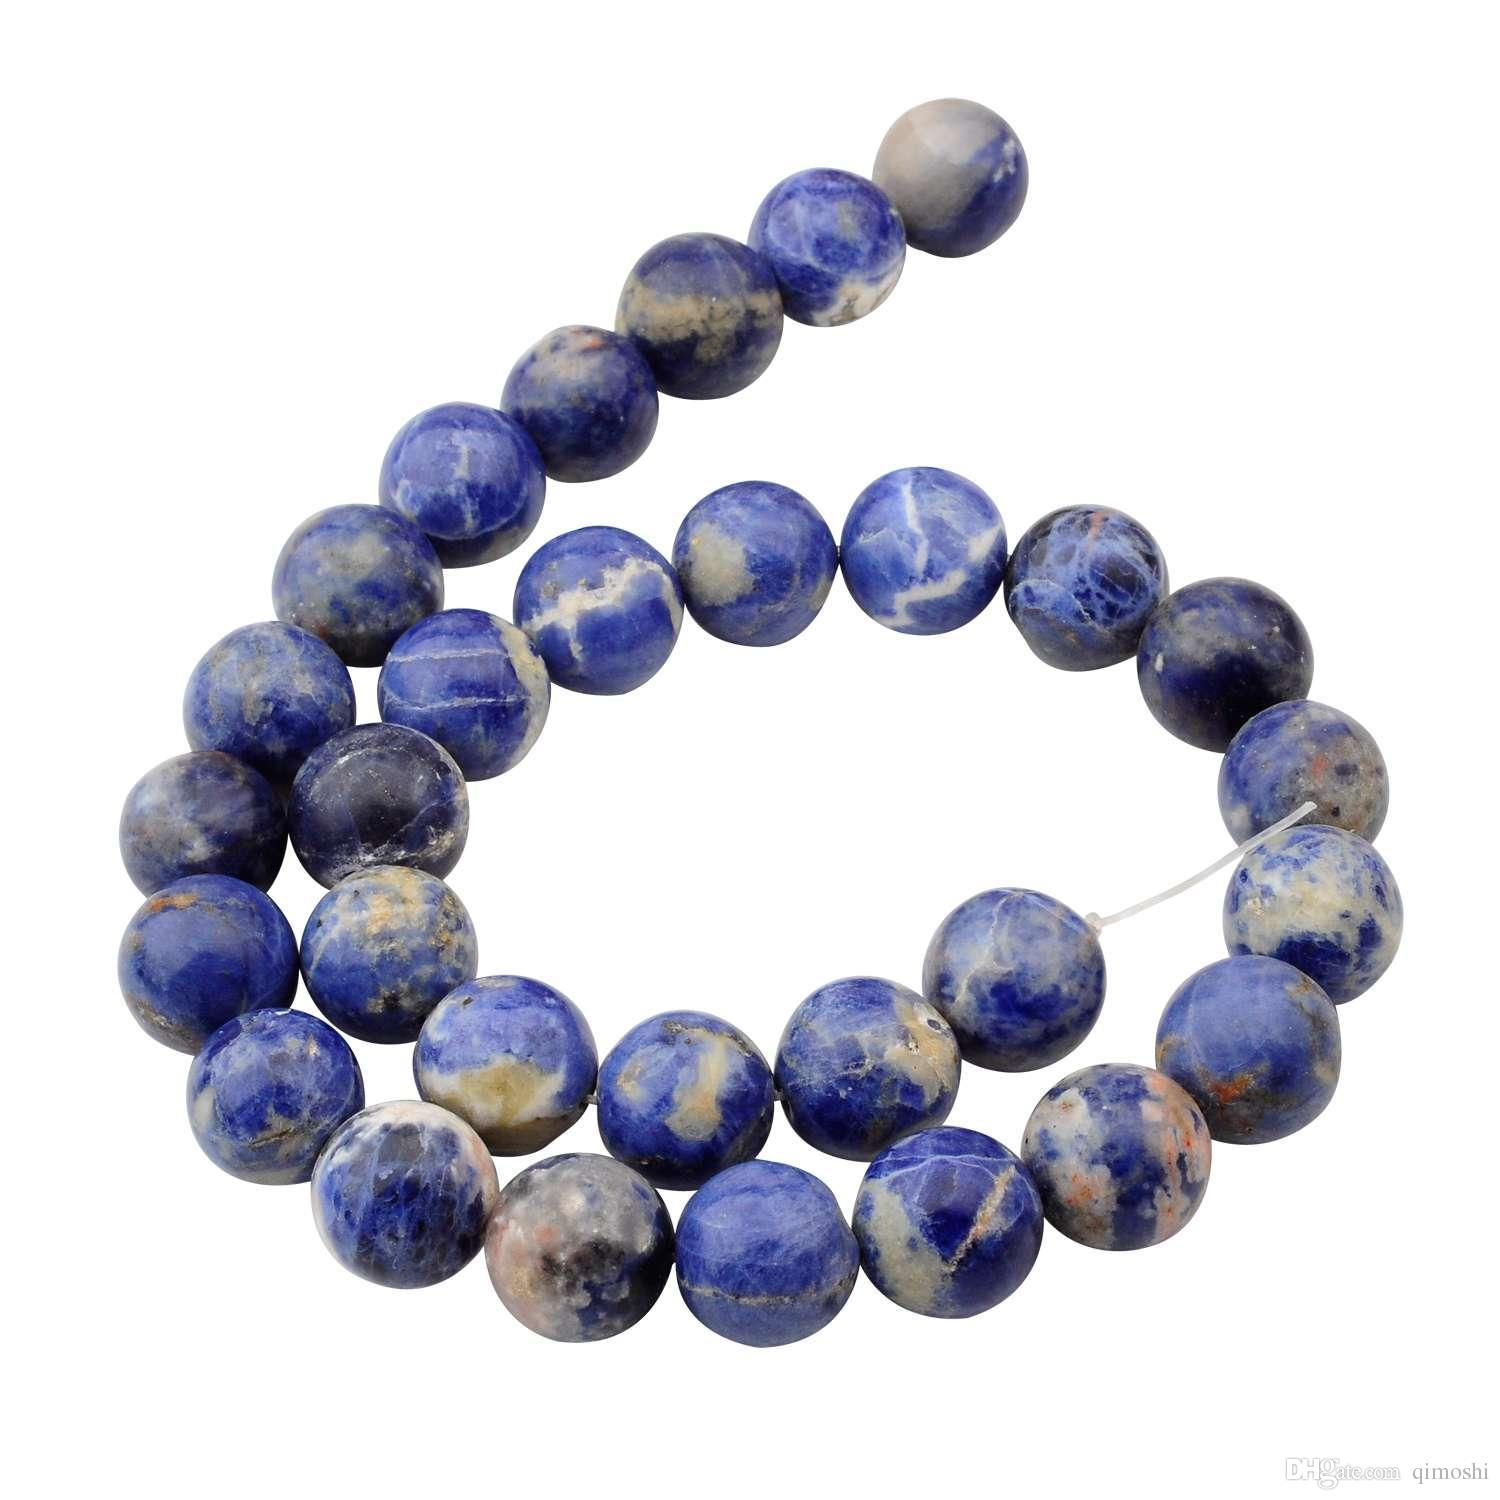 beads eye semi wholesale gemstone the jewelry gemstones supply quite types in including are and for of qualities different we making competitive precious india tiger